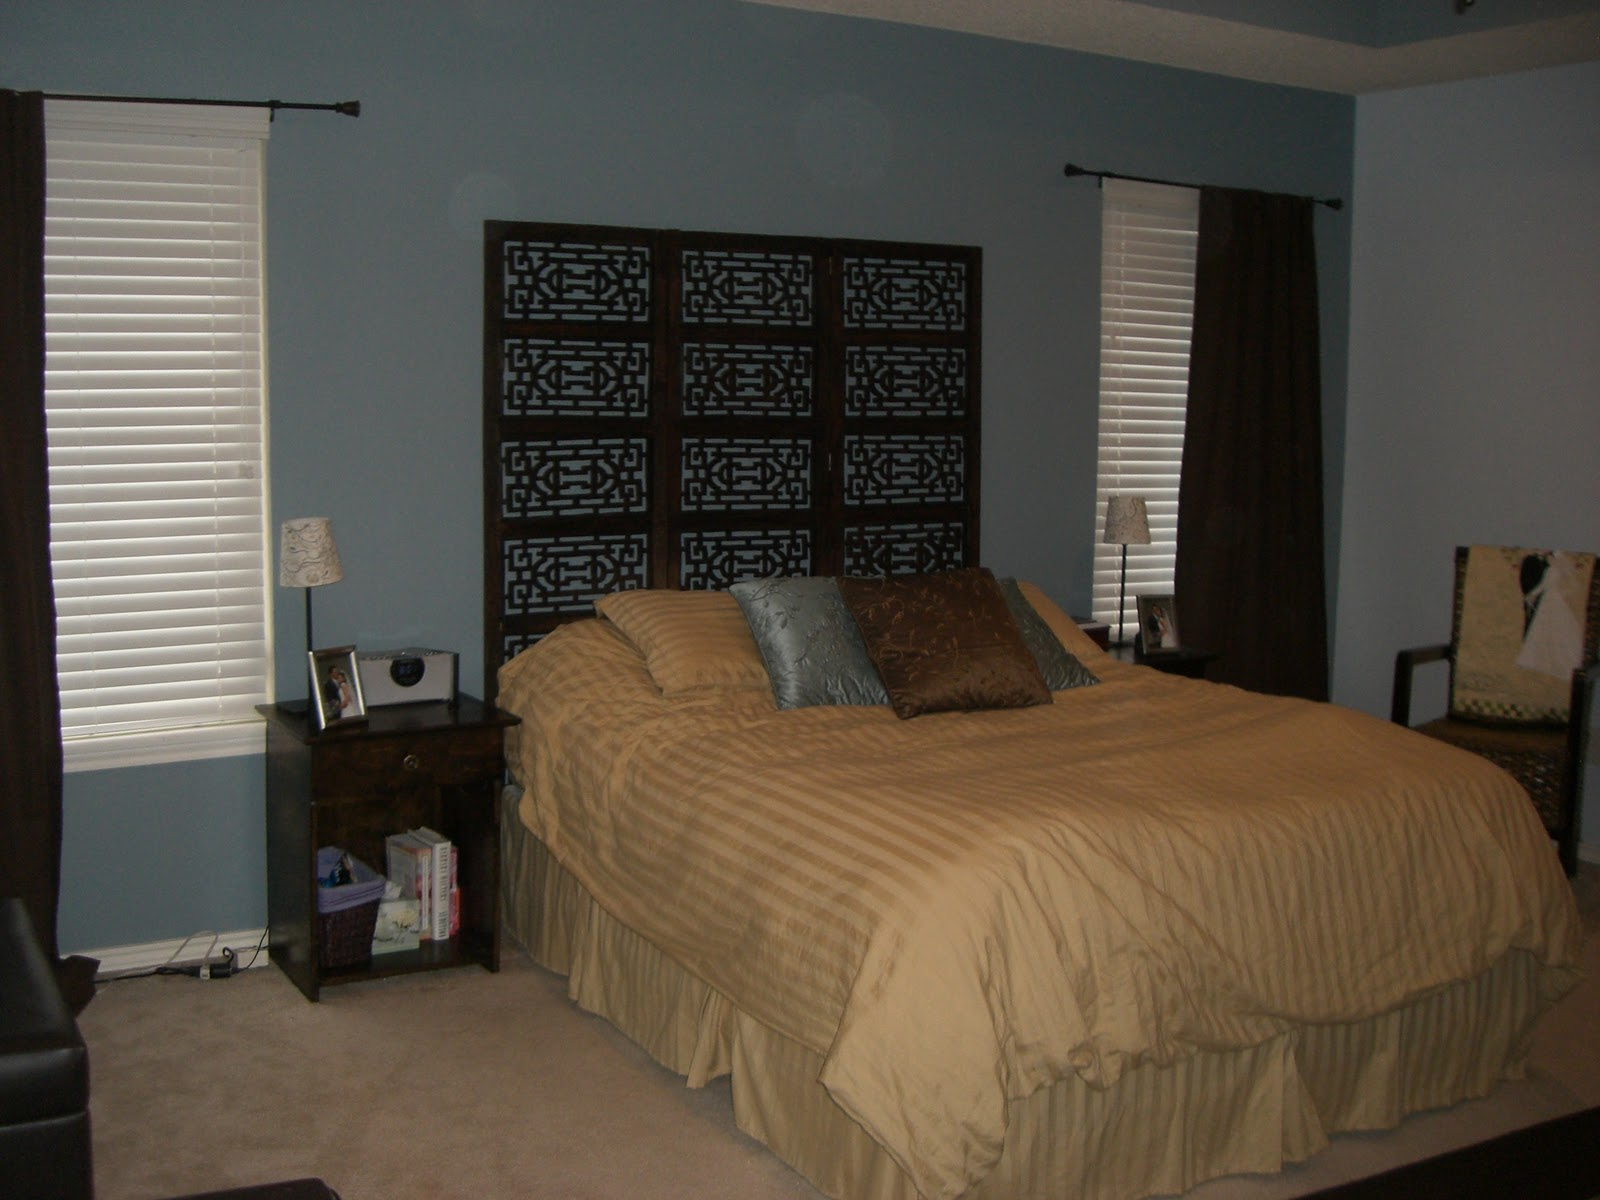 lacefields in love wanna see our in seductive voice master bedroom